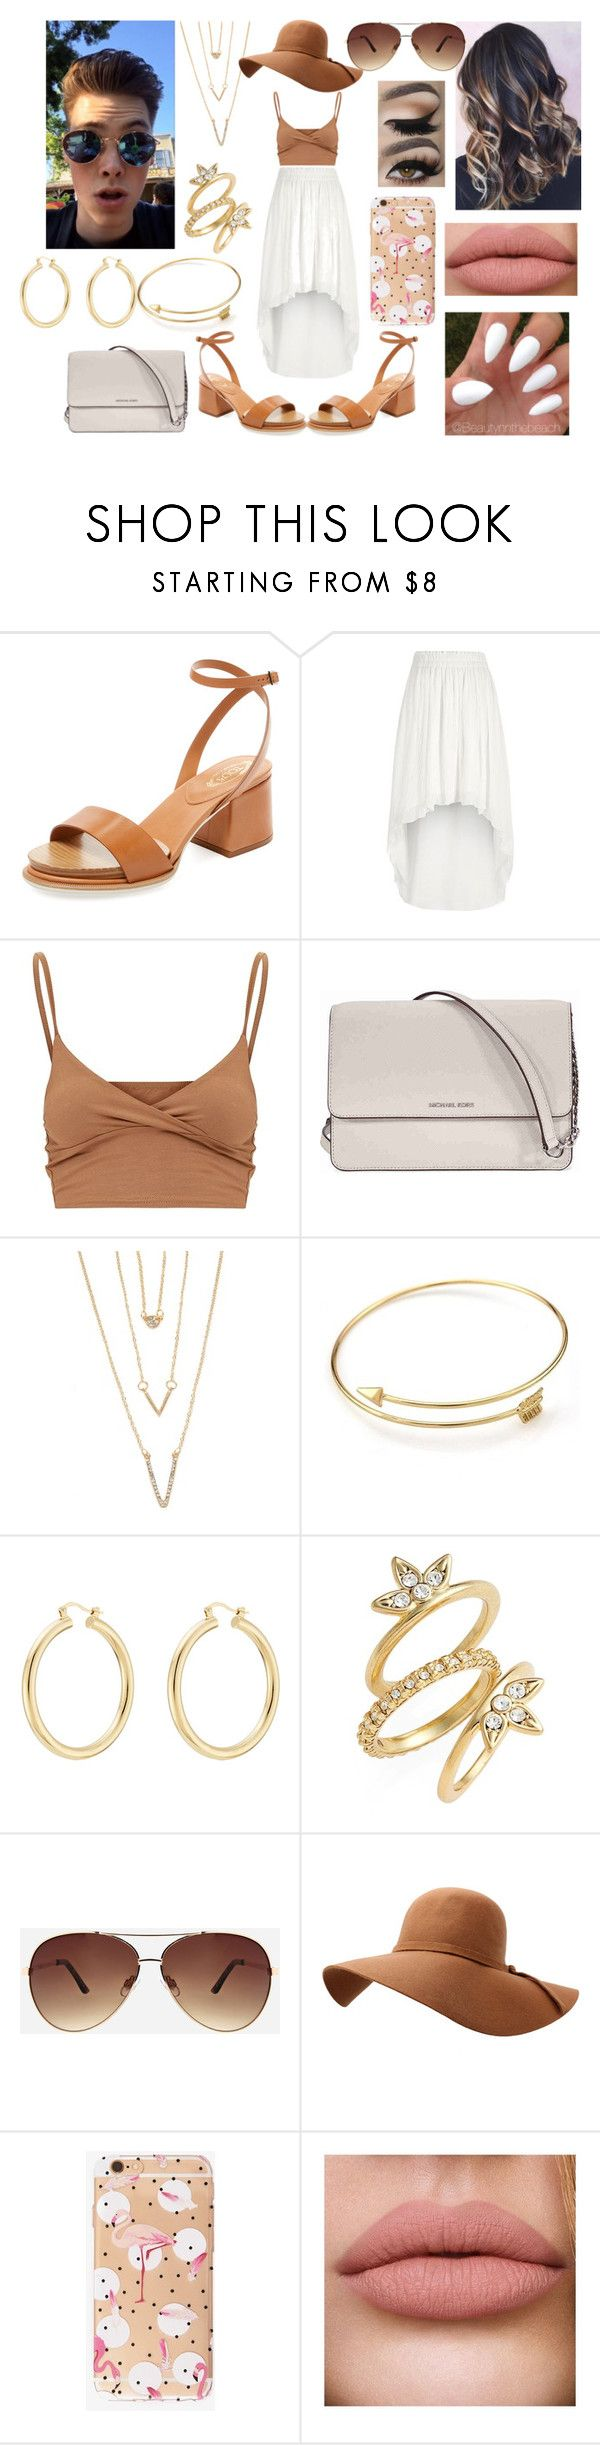 """Summer Park Picnic Date With Zach Herron"" by roxy-crushlings on Polyvore featuring Tod's, River Island, Michael Kors, SHAN, Isabel Marant, Luv Aj, Ashley Stewart, whydontwe and zachherron"